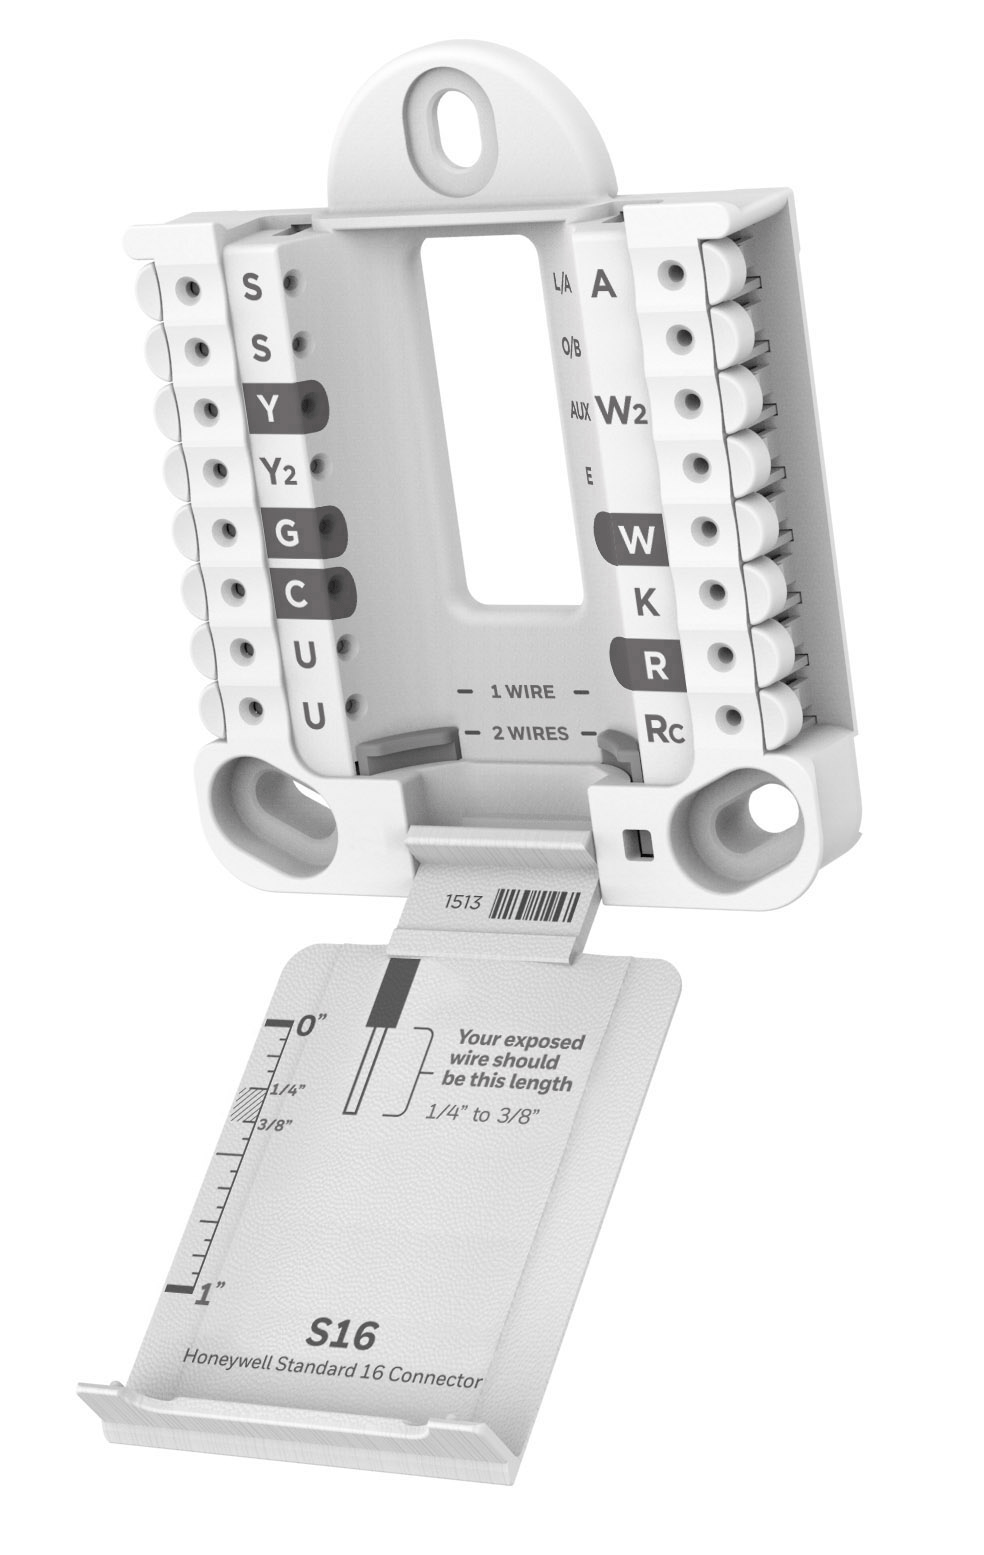 hight resolution of every t series thermostat employs this system this means that they have a common mounting plate and that replacing one t series thermostat with another is